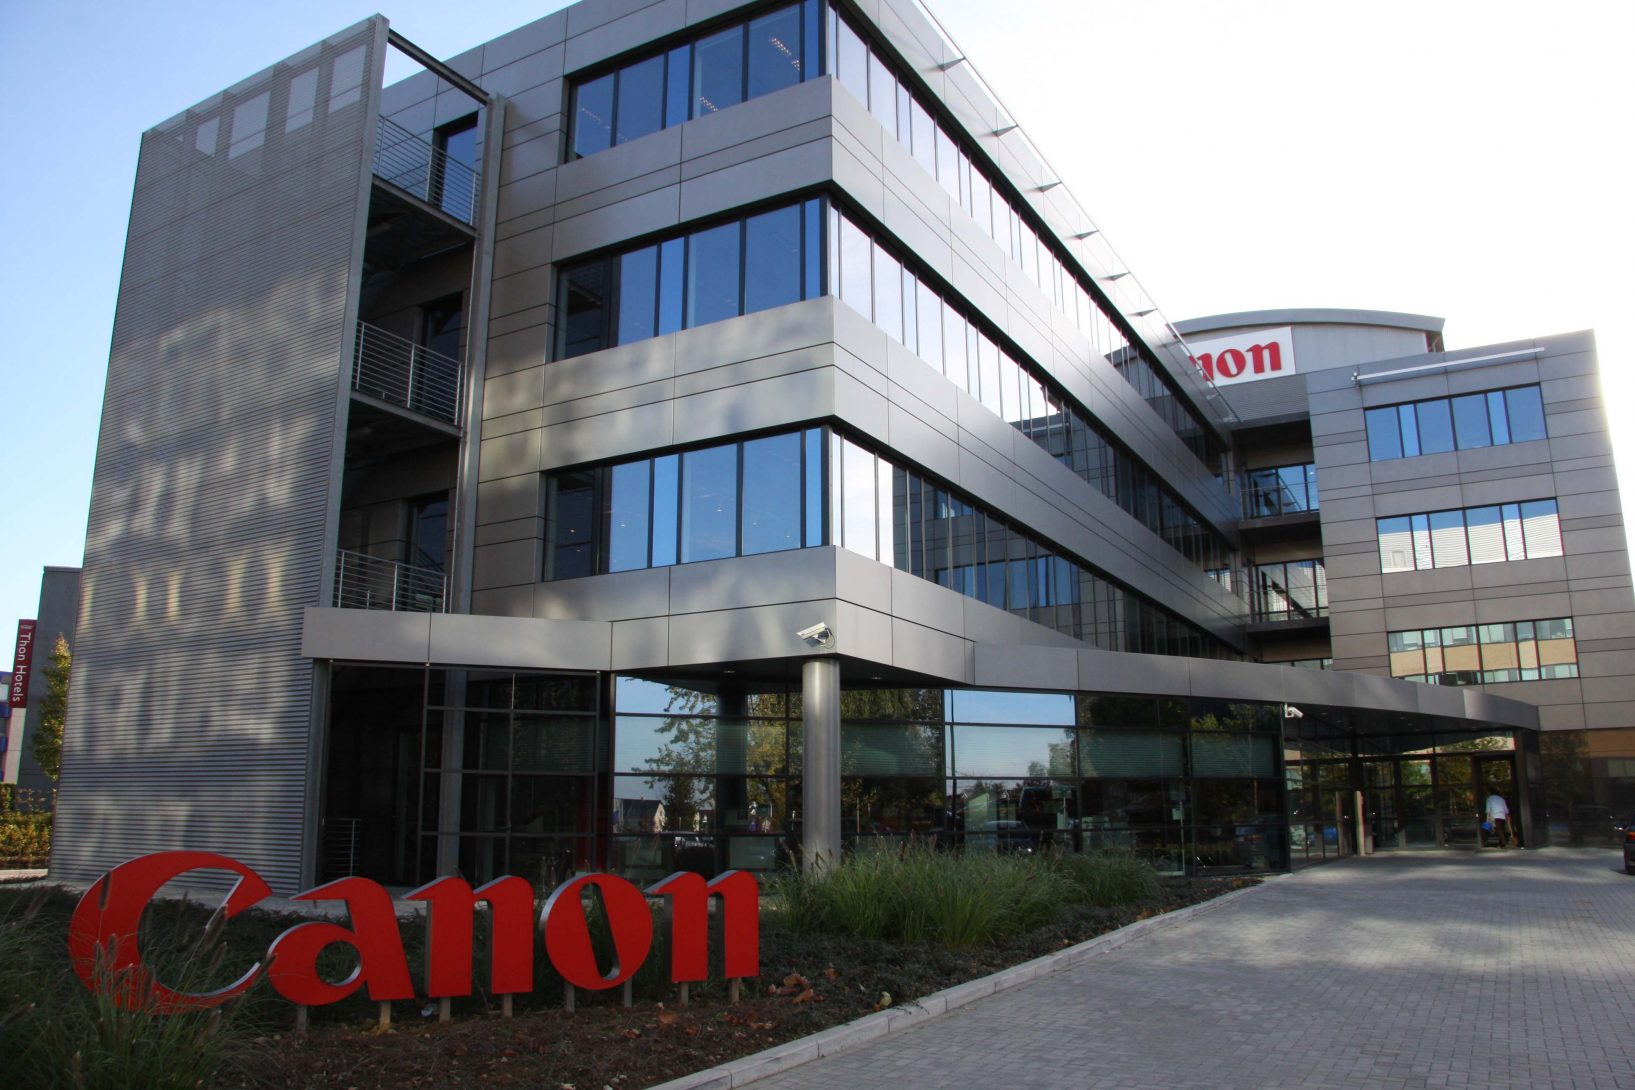 Canon Middle East Launches Operations In Saudi Arabia, Aims To Have 300 Employees By 2020